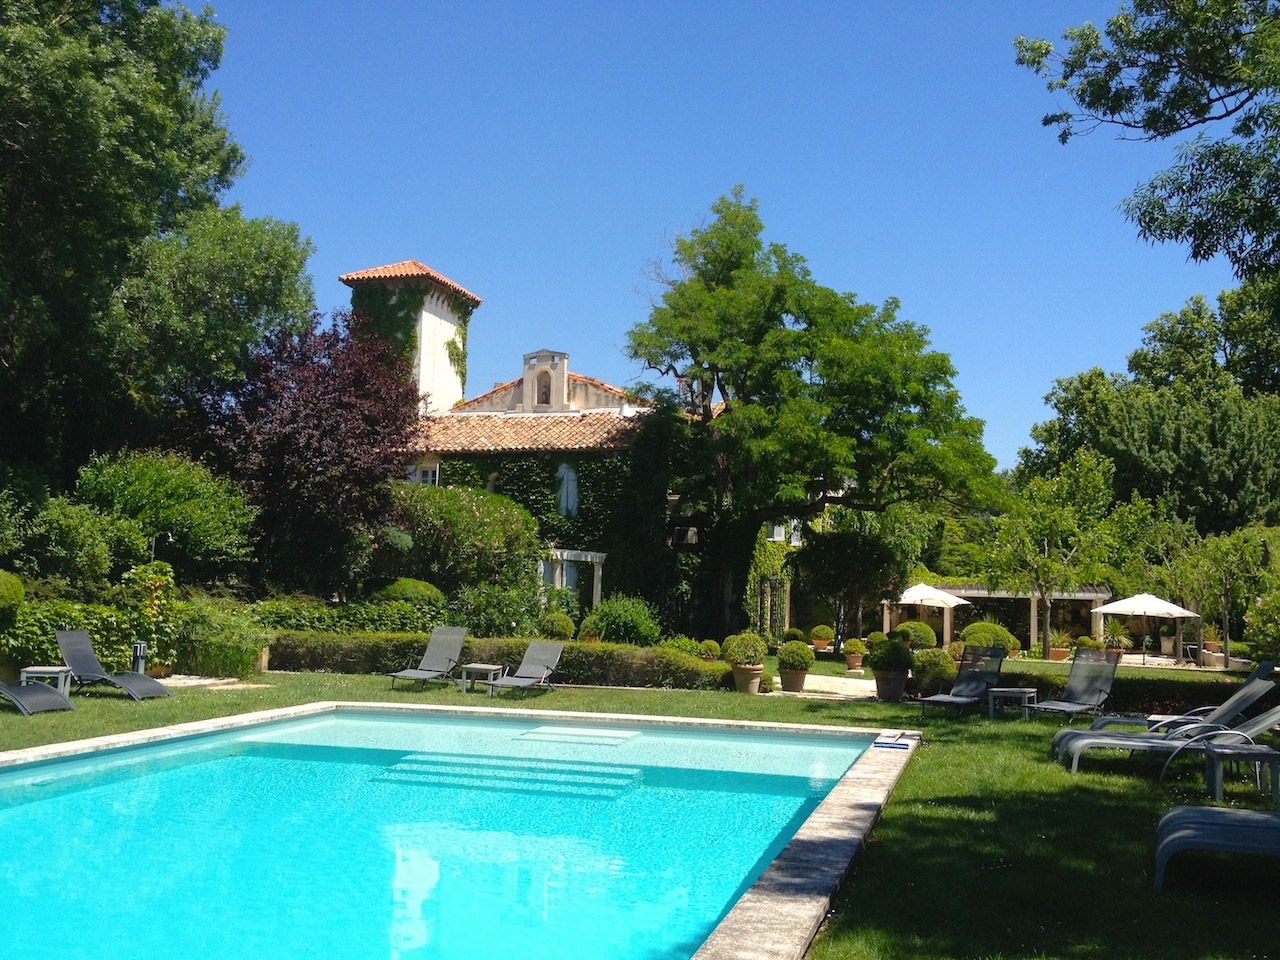 Villeneuve-les-Avignon, elegant 16th century Chateau, beautiful grounds, at just minutes from the Papal Palace